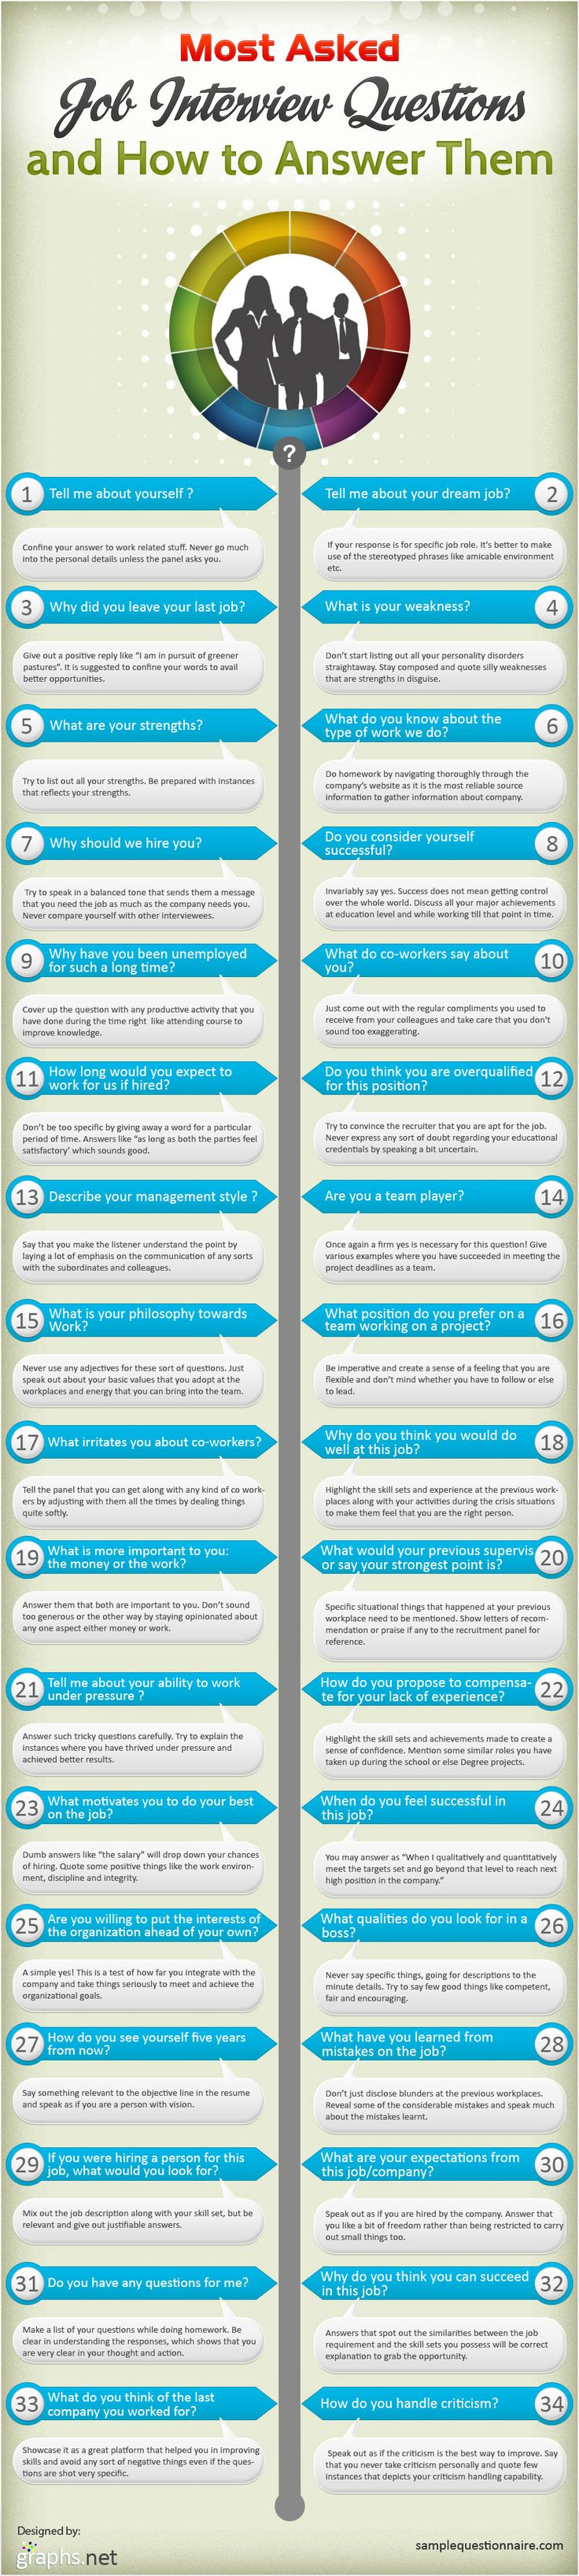 Here are the most asked job interview question and how to answer them.